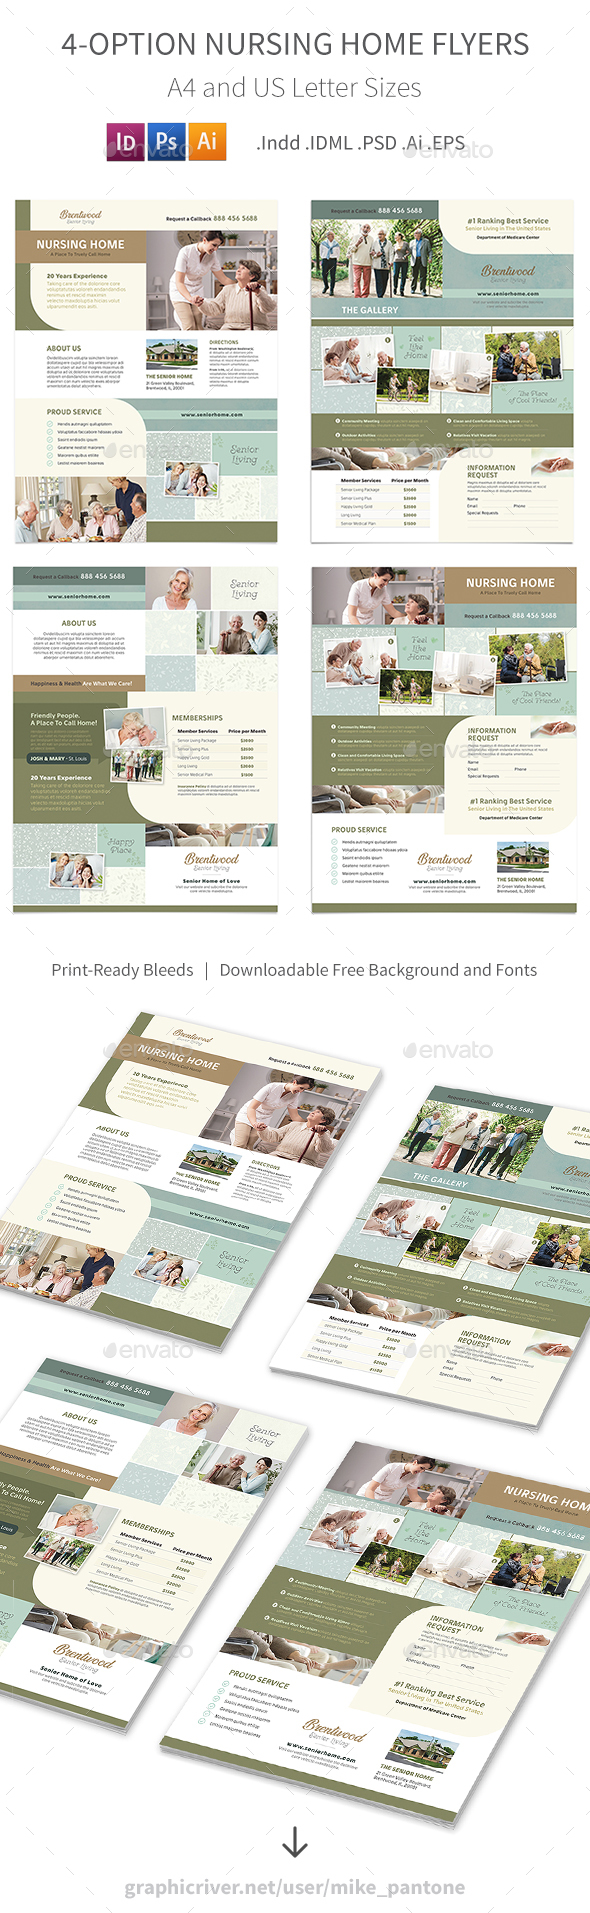 Nursing Home Flyers 2 – 4 Options - Corporate Flyers